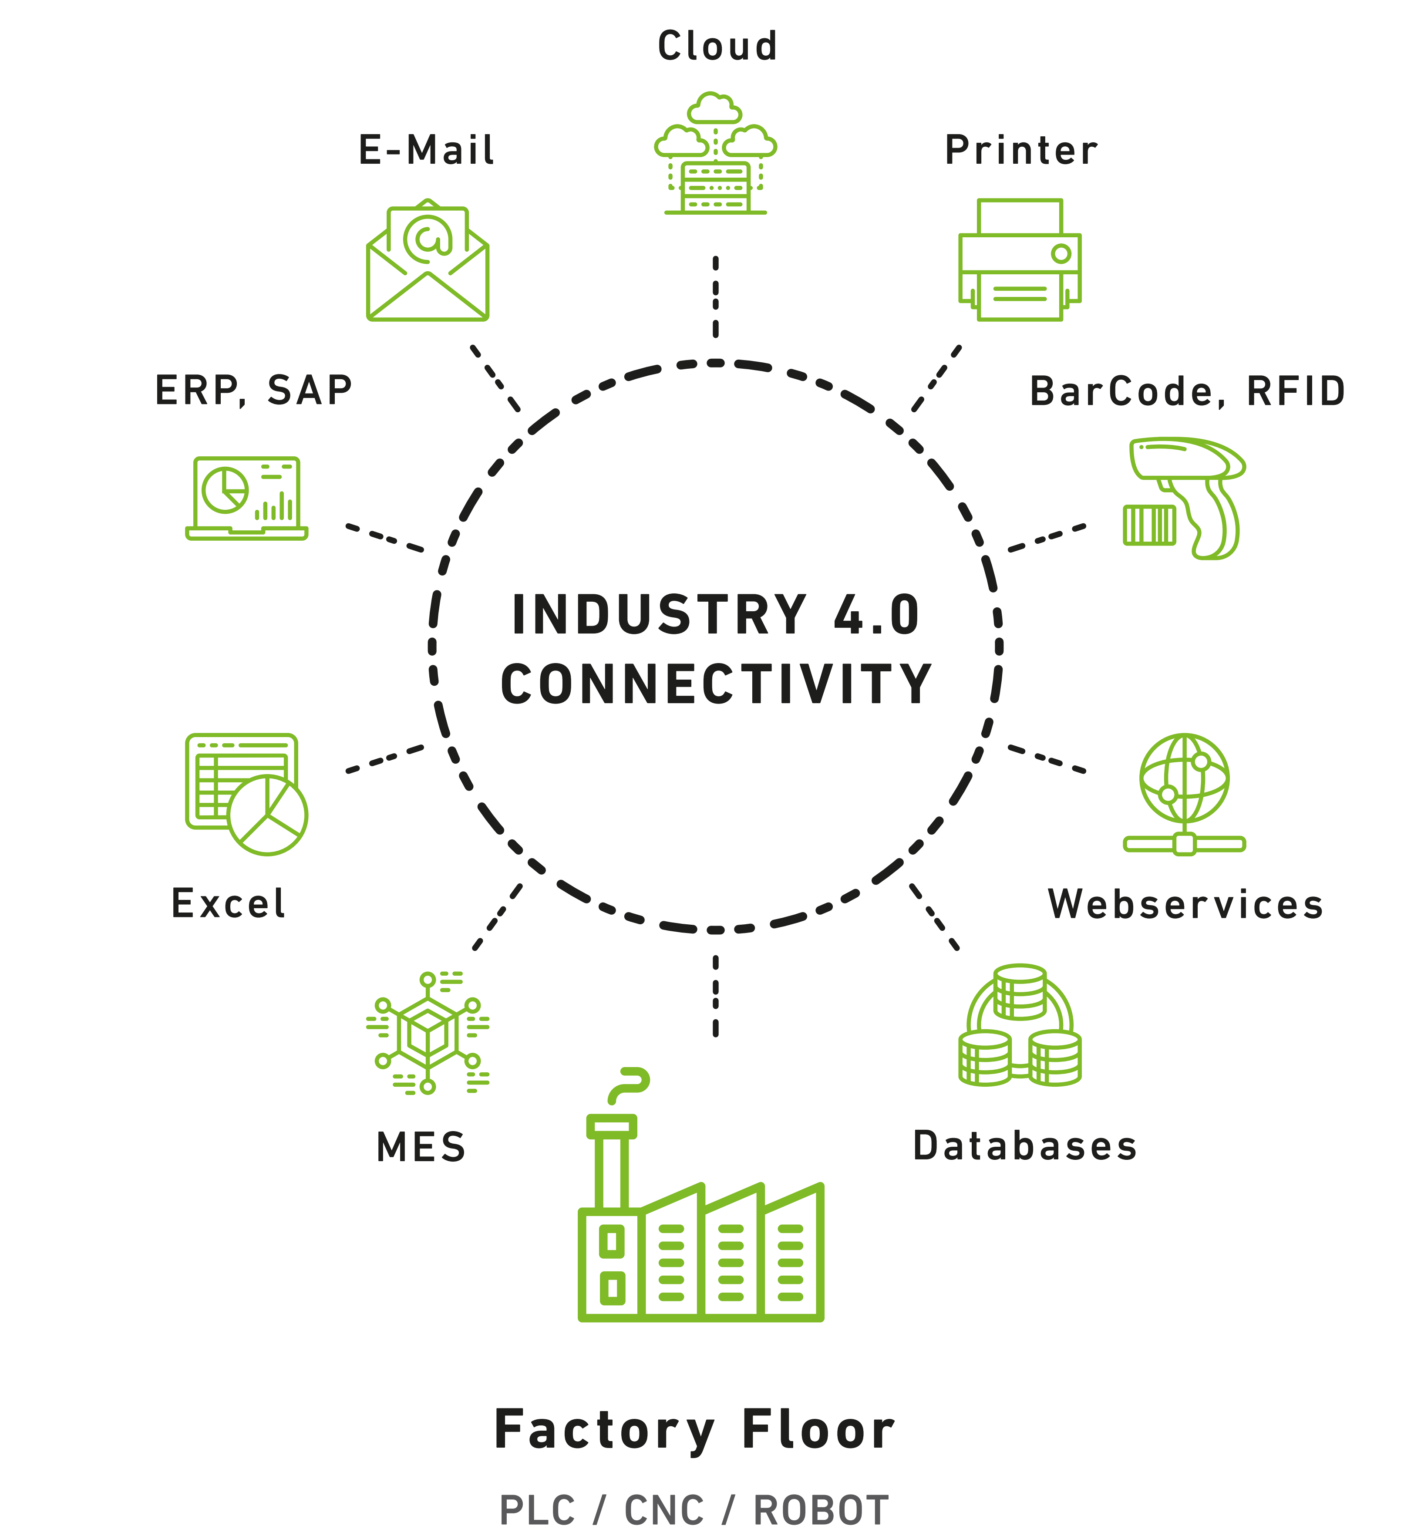 Industry 4.0 Connectivity